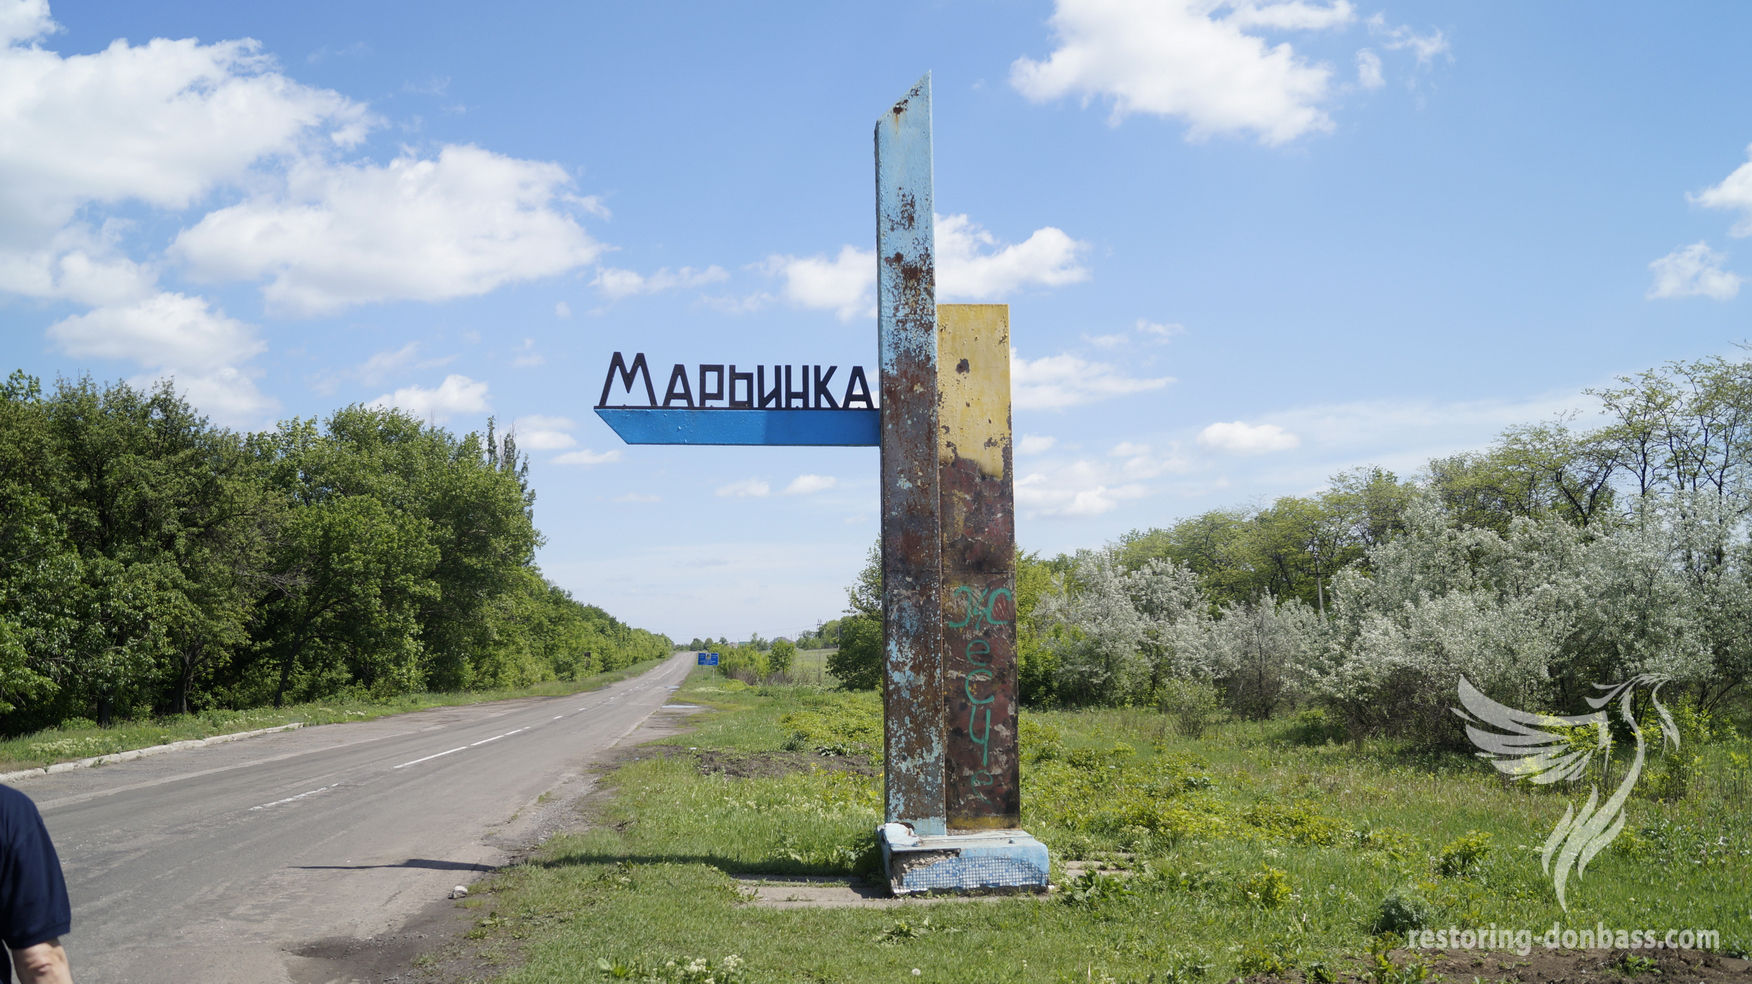 A new police station is to appear at check point in Mariinka